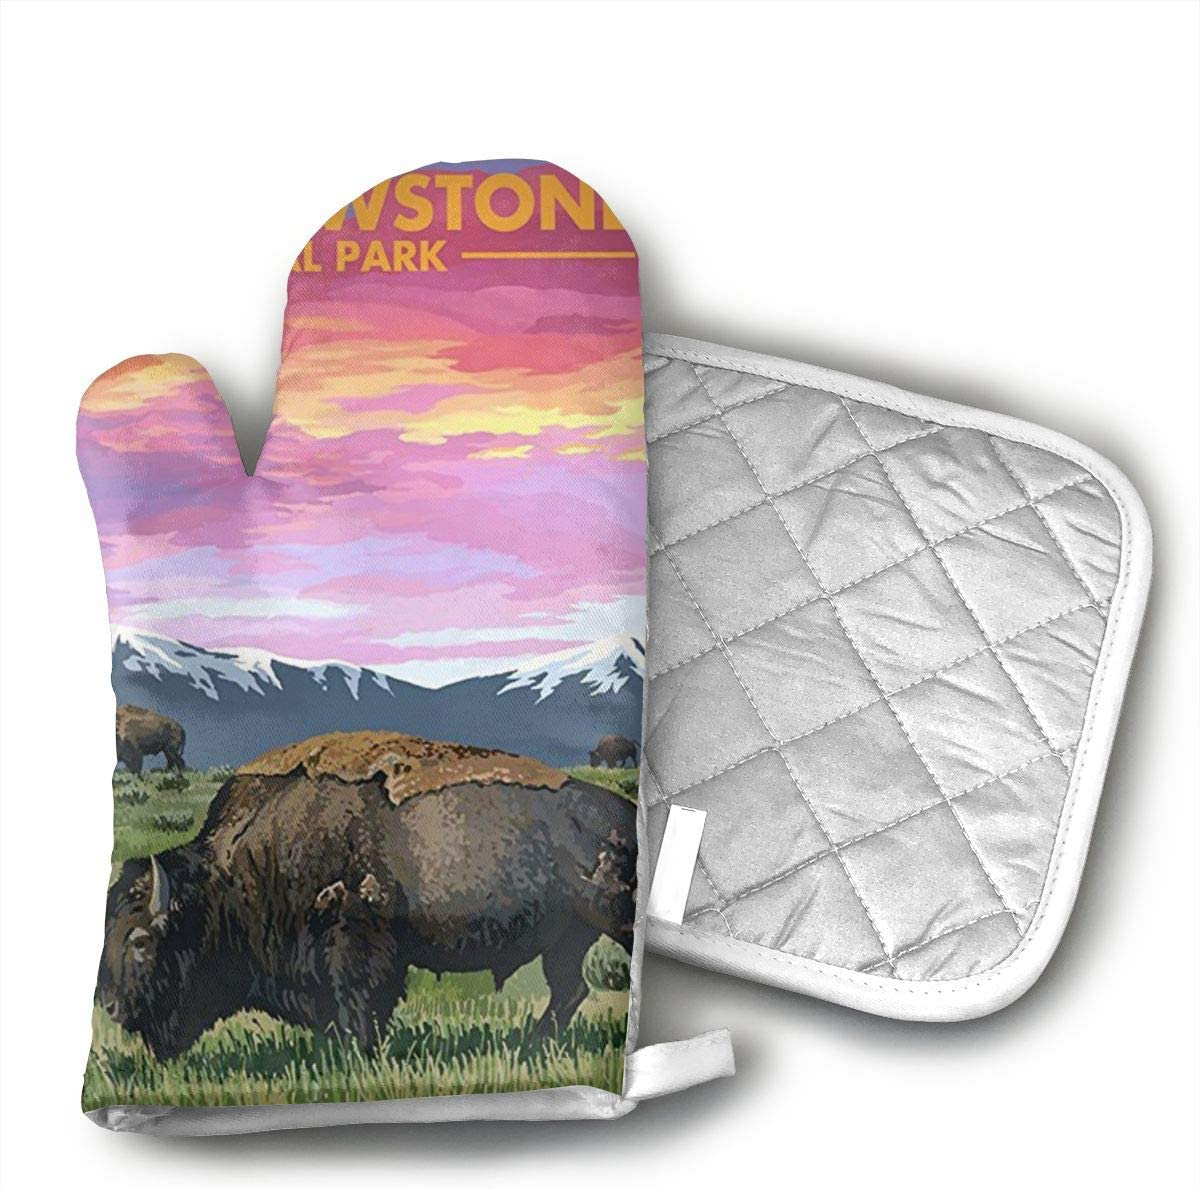 HGUIDHG Yellowstone National Park Oven Mitts+Insulated Square Mat,Heat Resistant Kitchen Gloves Soft Insulated Deep Pockets, Non-Slip Handles